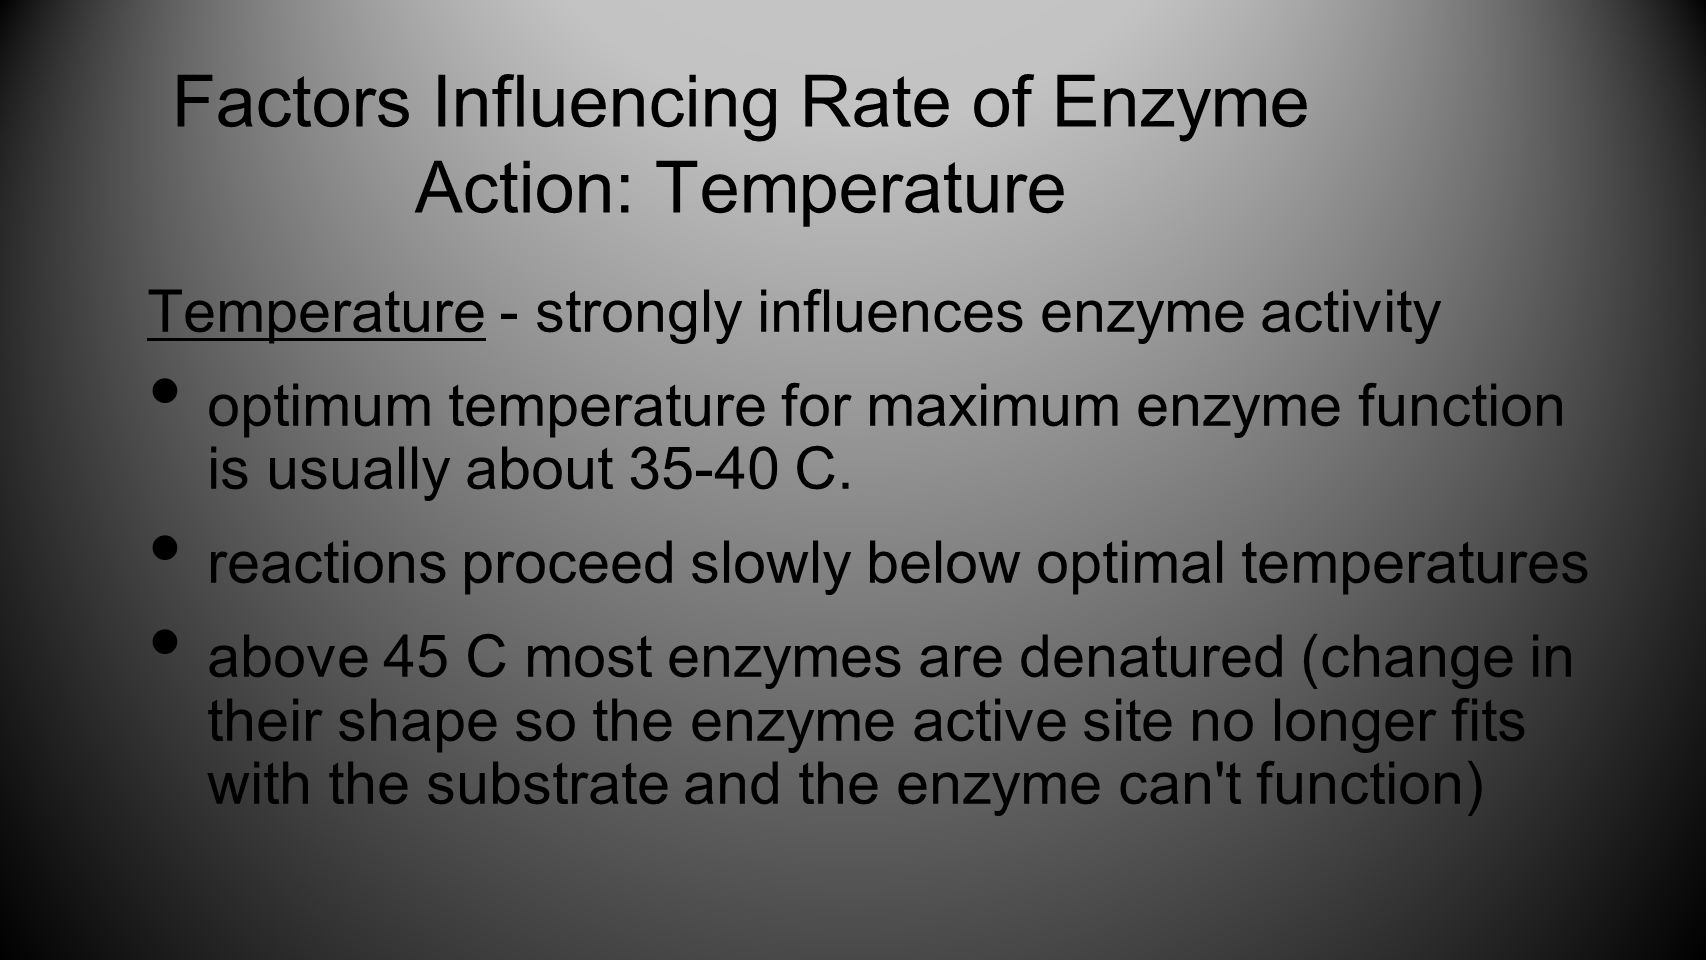 Temperature - strongly influences enzyme activity optimum temperature for maximum enzyme function is usually about 35-40 C. reactions proceed slowly b